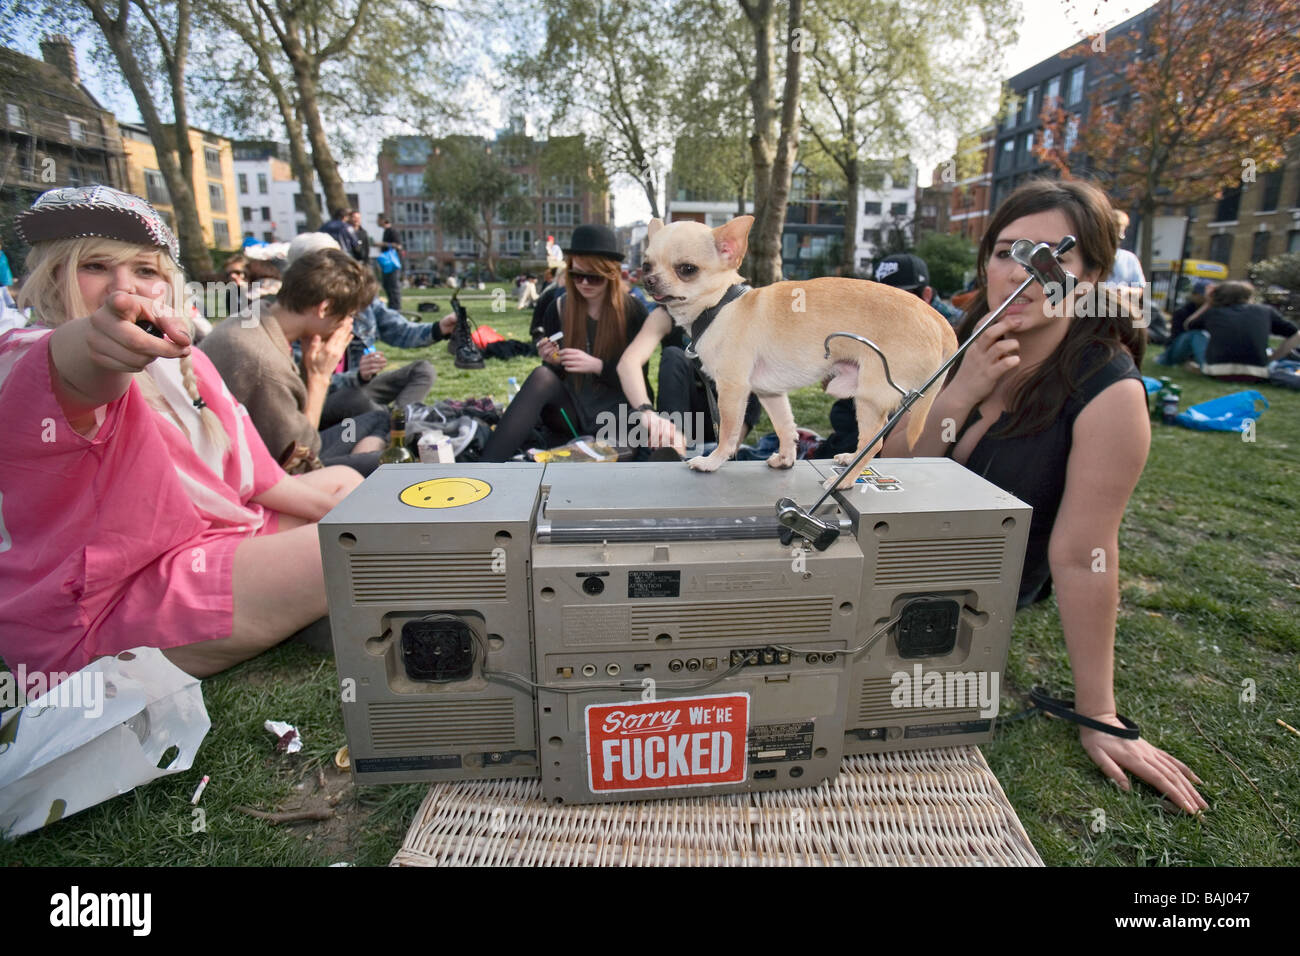 chihuaua on top of a stereo in a london park - Stock Image